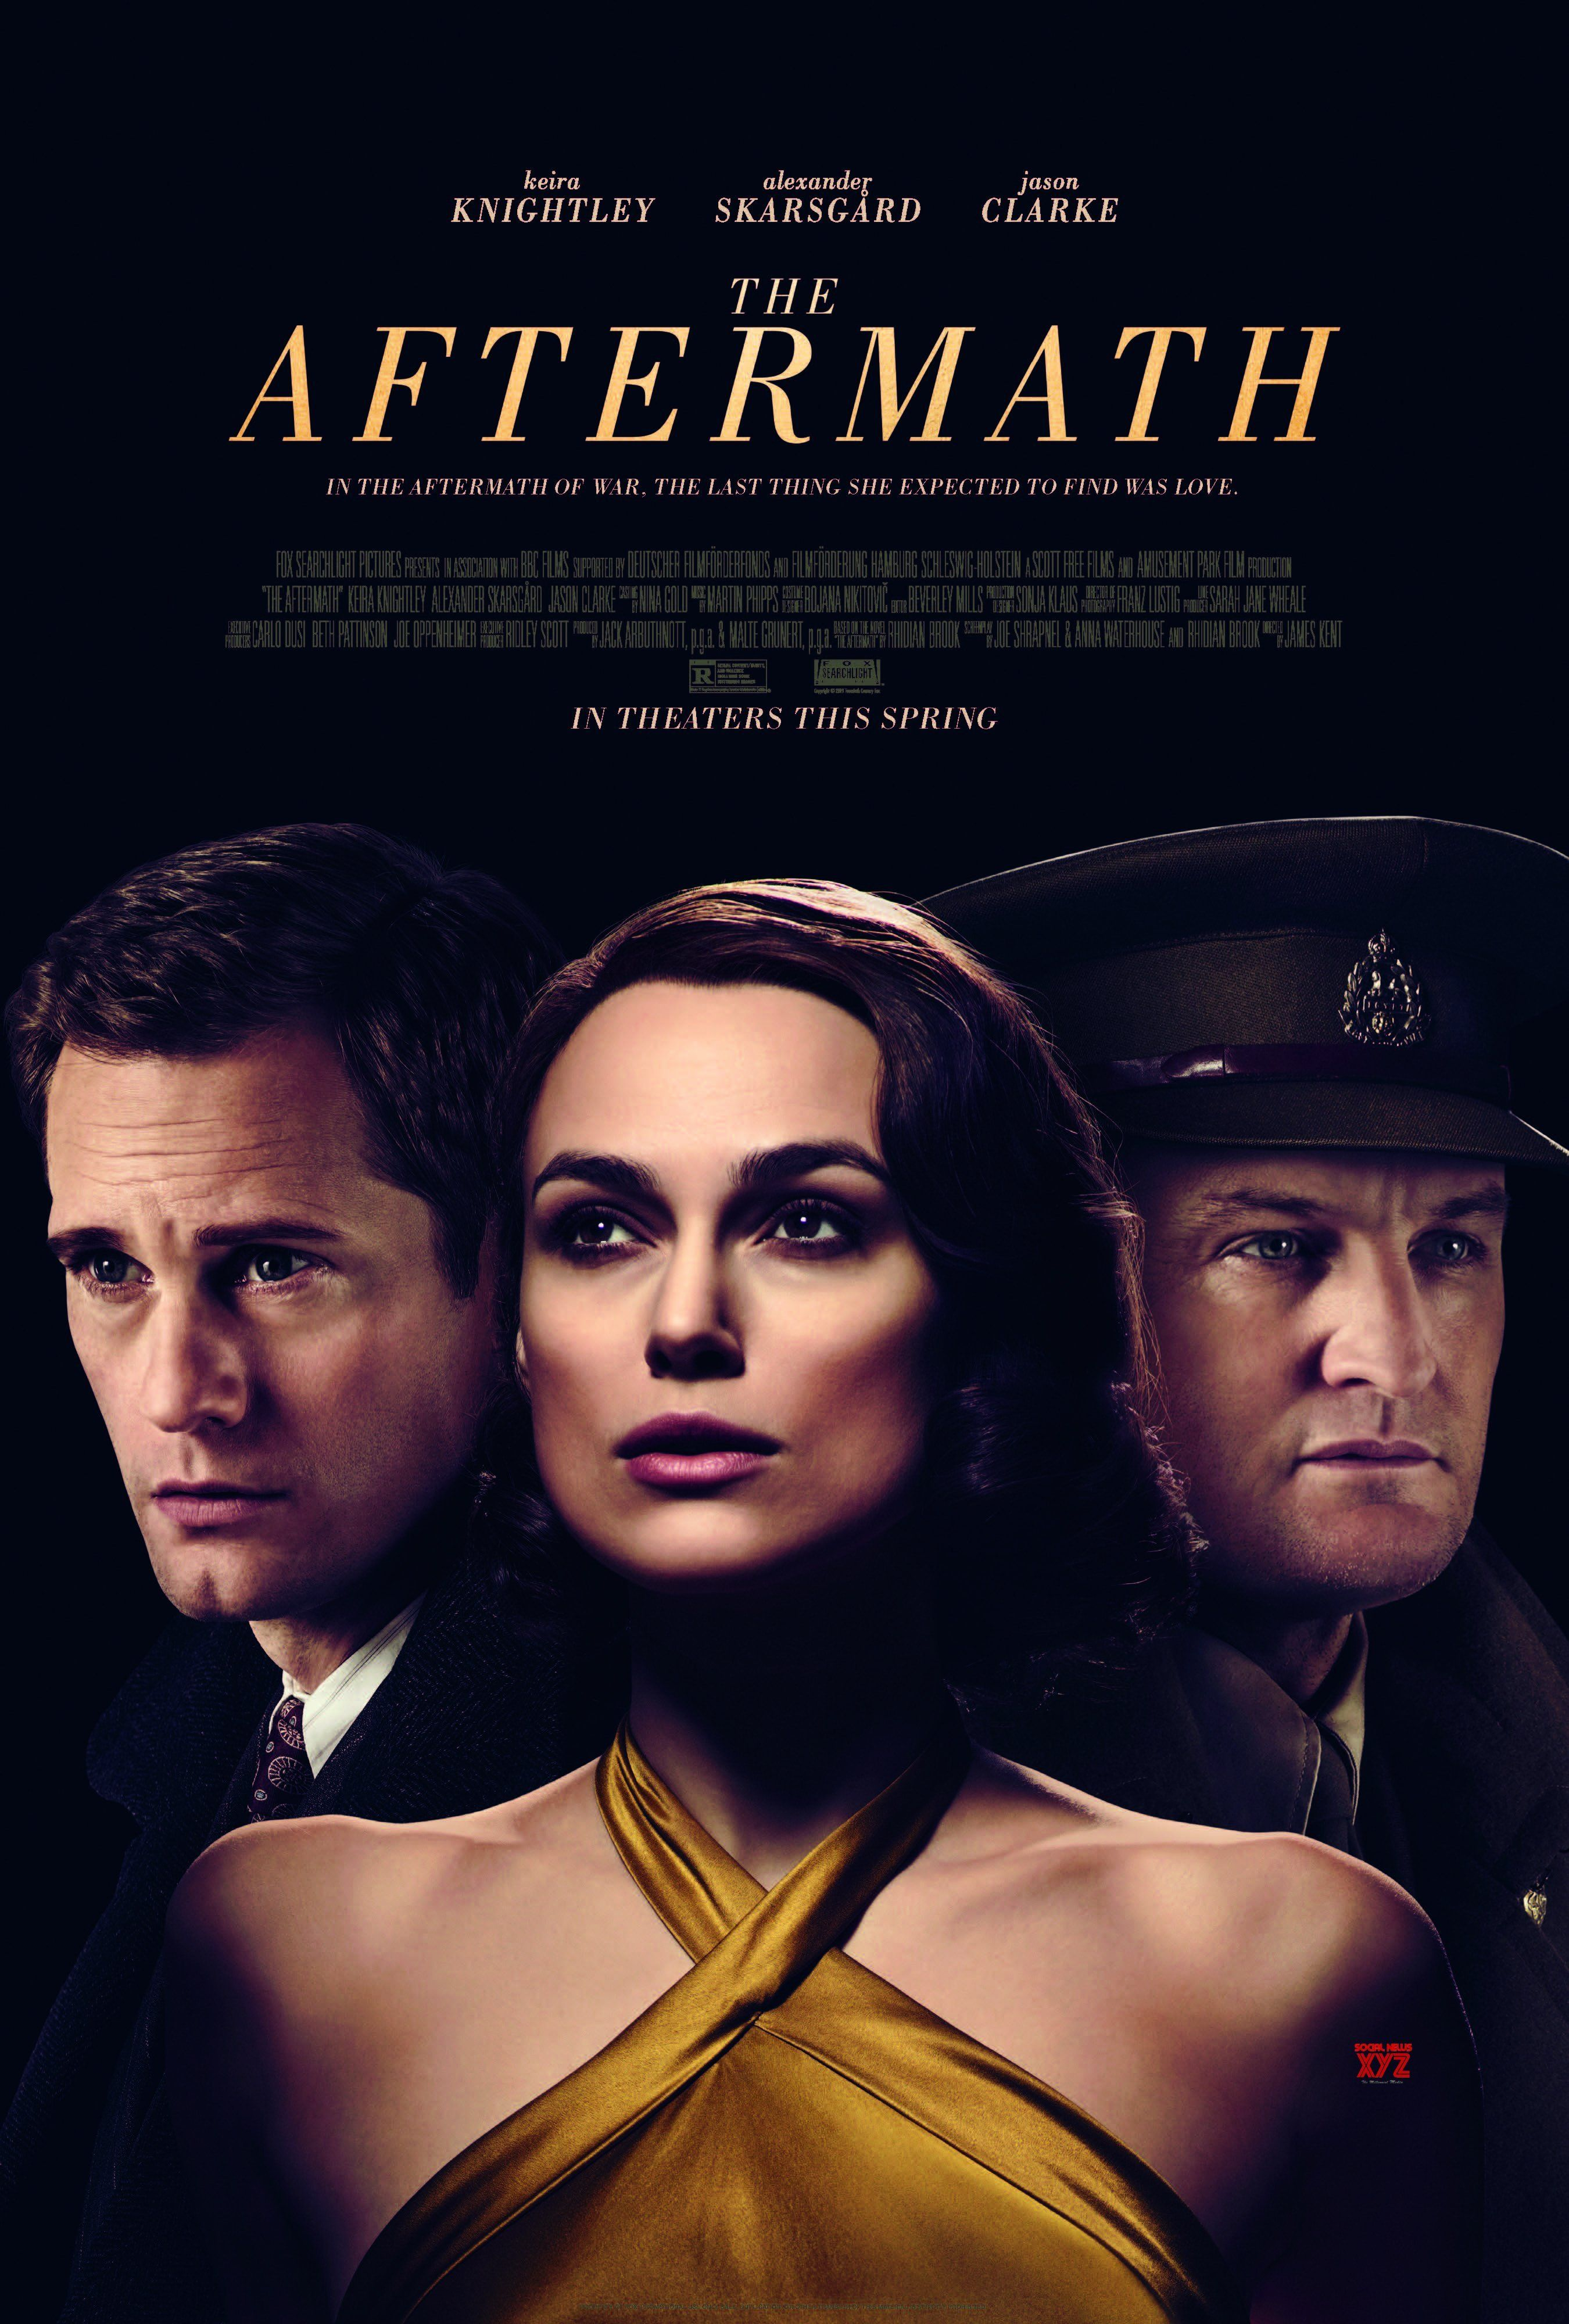 The Aftermath Movie Latest Hd Poster Social News Xyz Free Movies Online Full Movies Online Free Free Movies